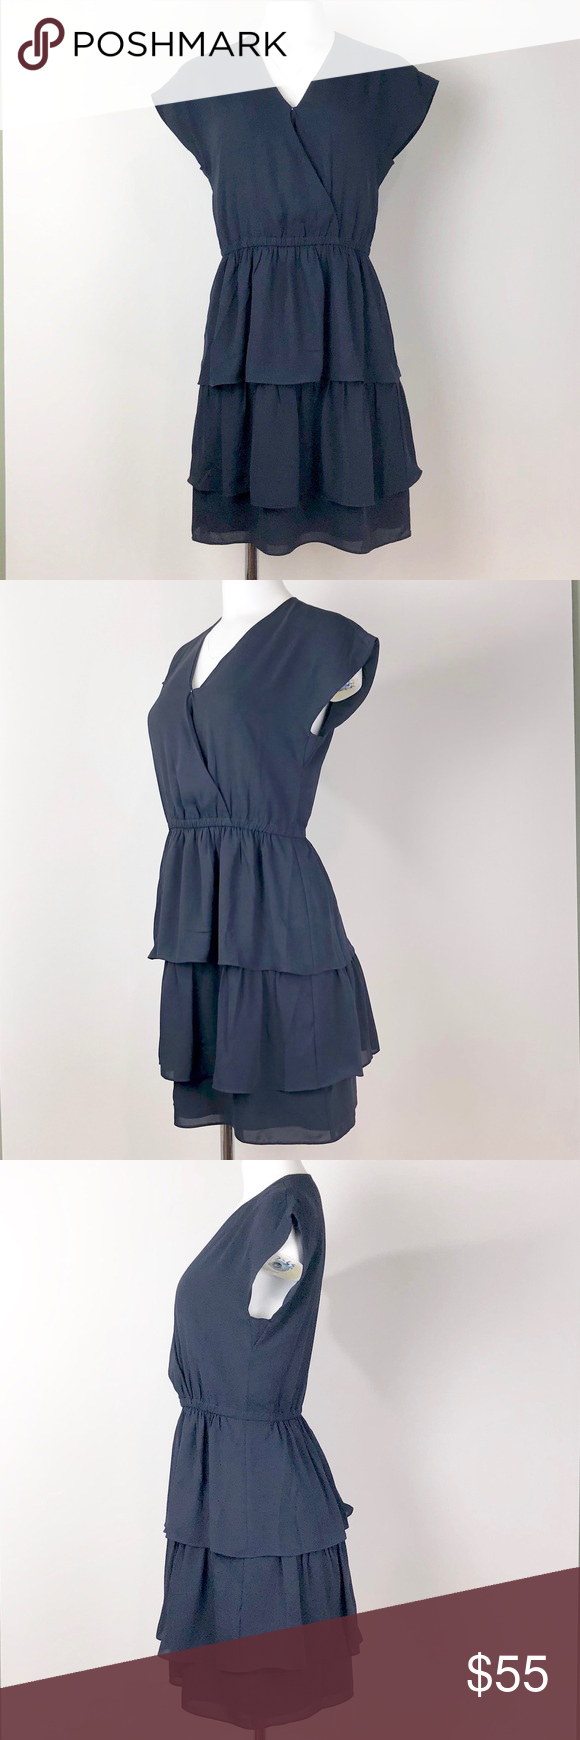 50d25806b58e J. CREW POINT SUR NAVY TIERED RUFFLE DRESS J.Crew Point Sur Tiered Ruffle